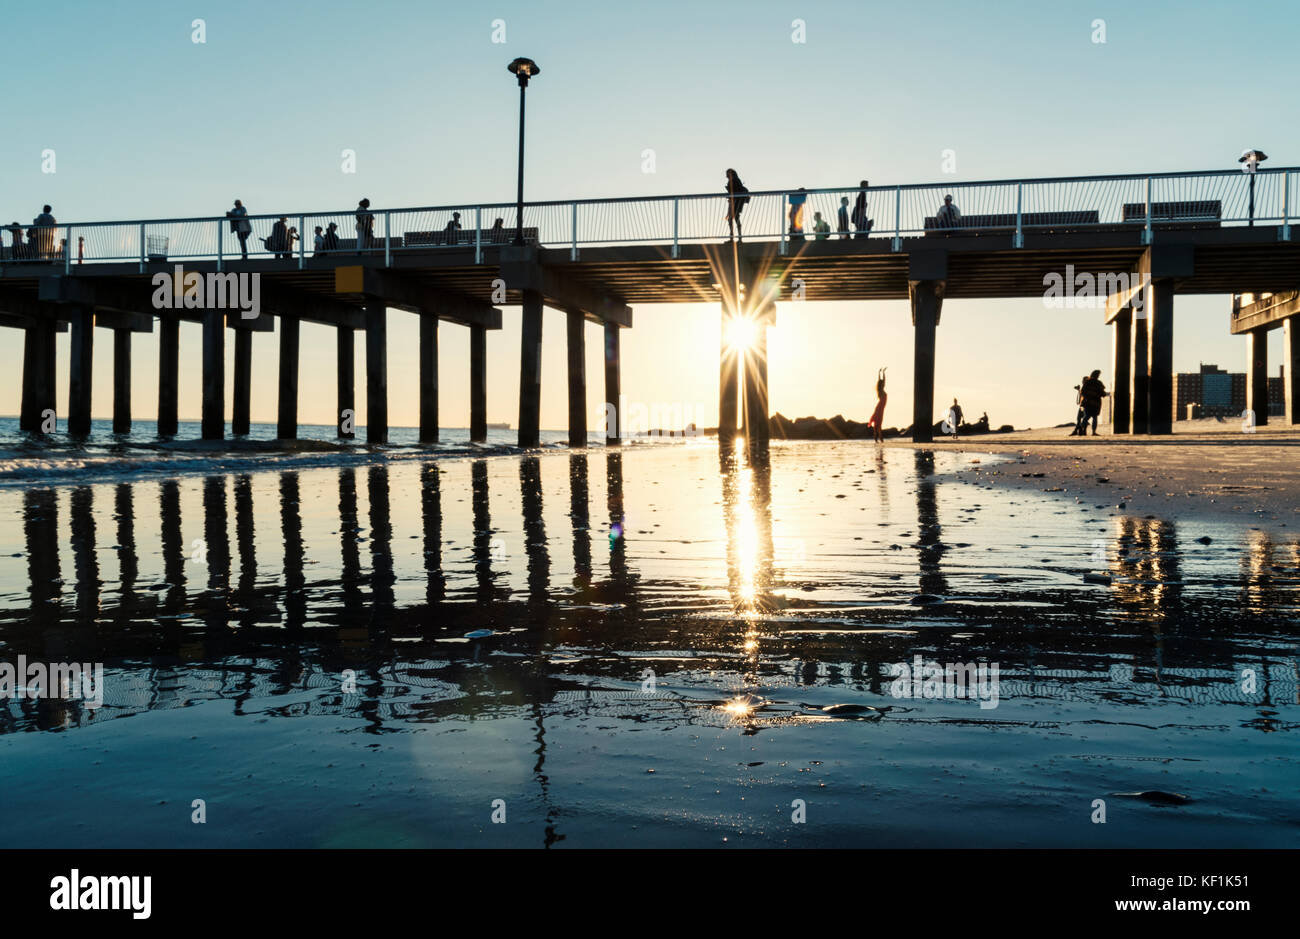 Silhouetted people on and under the Brighton beach pier on Coney island with sunburst - Stock Image